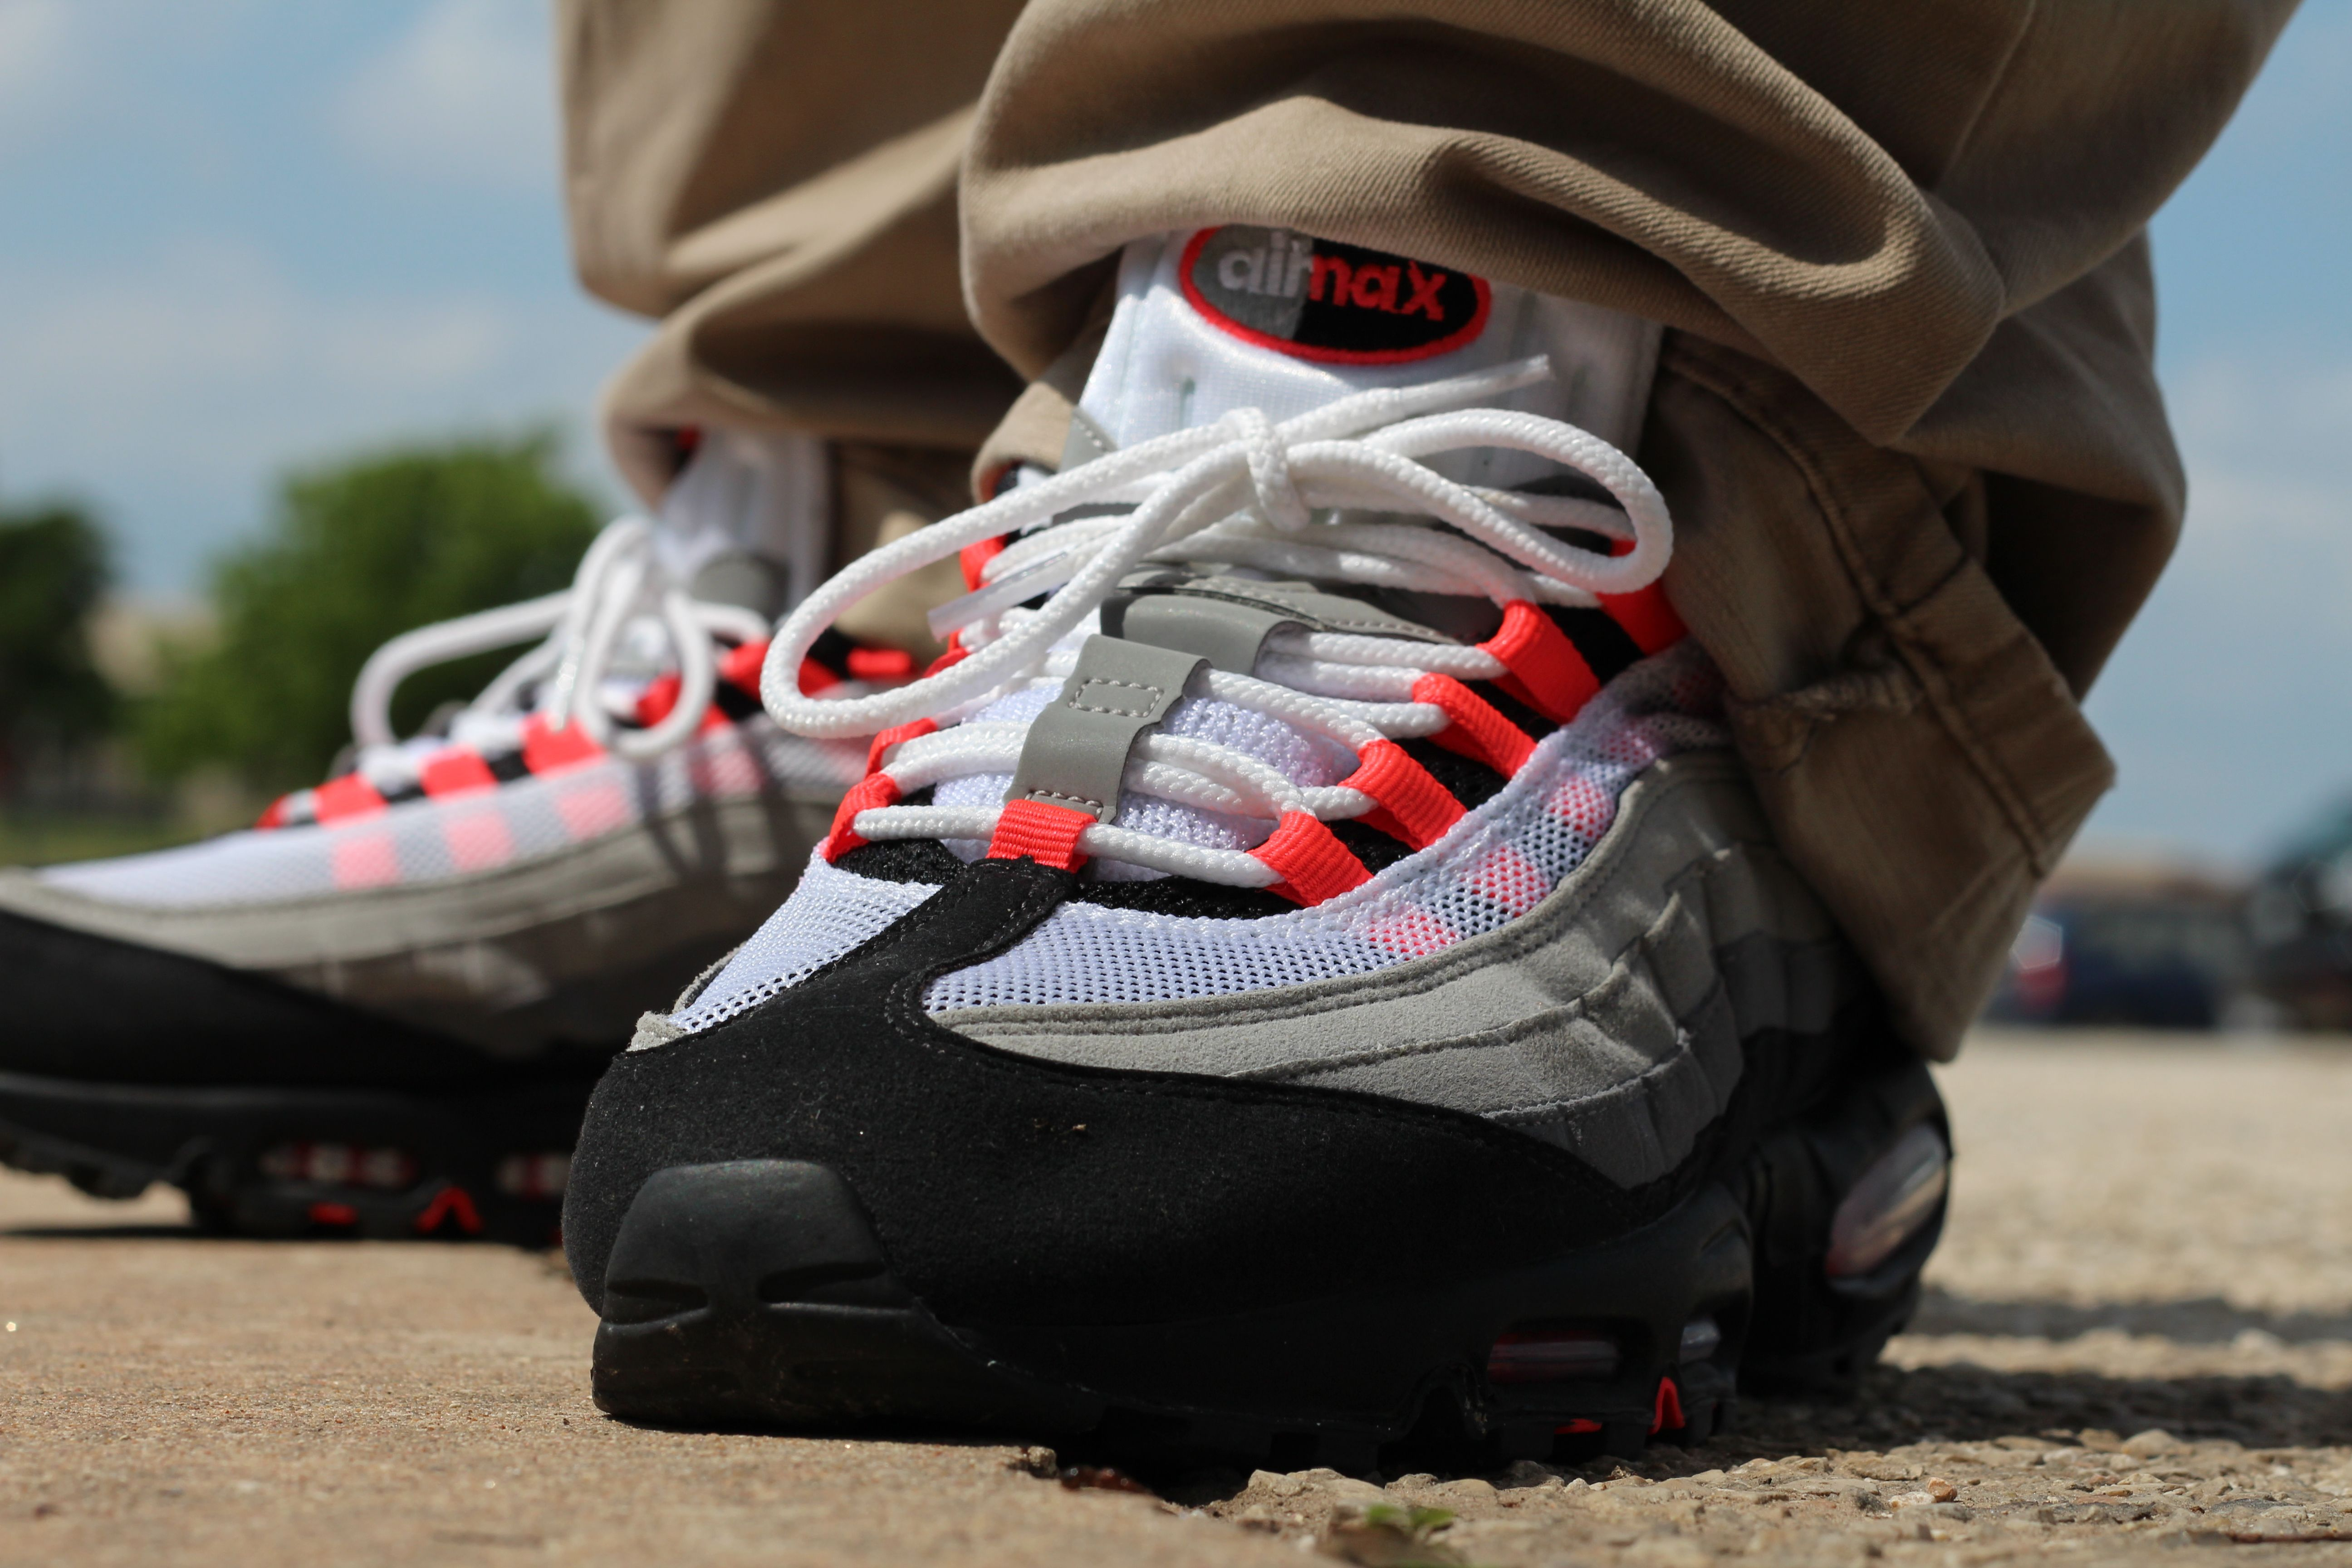 outlet on sale recognized brands buying now air max 95 solar red on feet, Nike Air Max Shoes | Nike Air ...